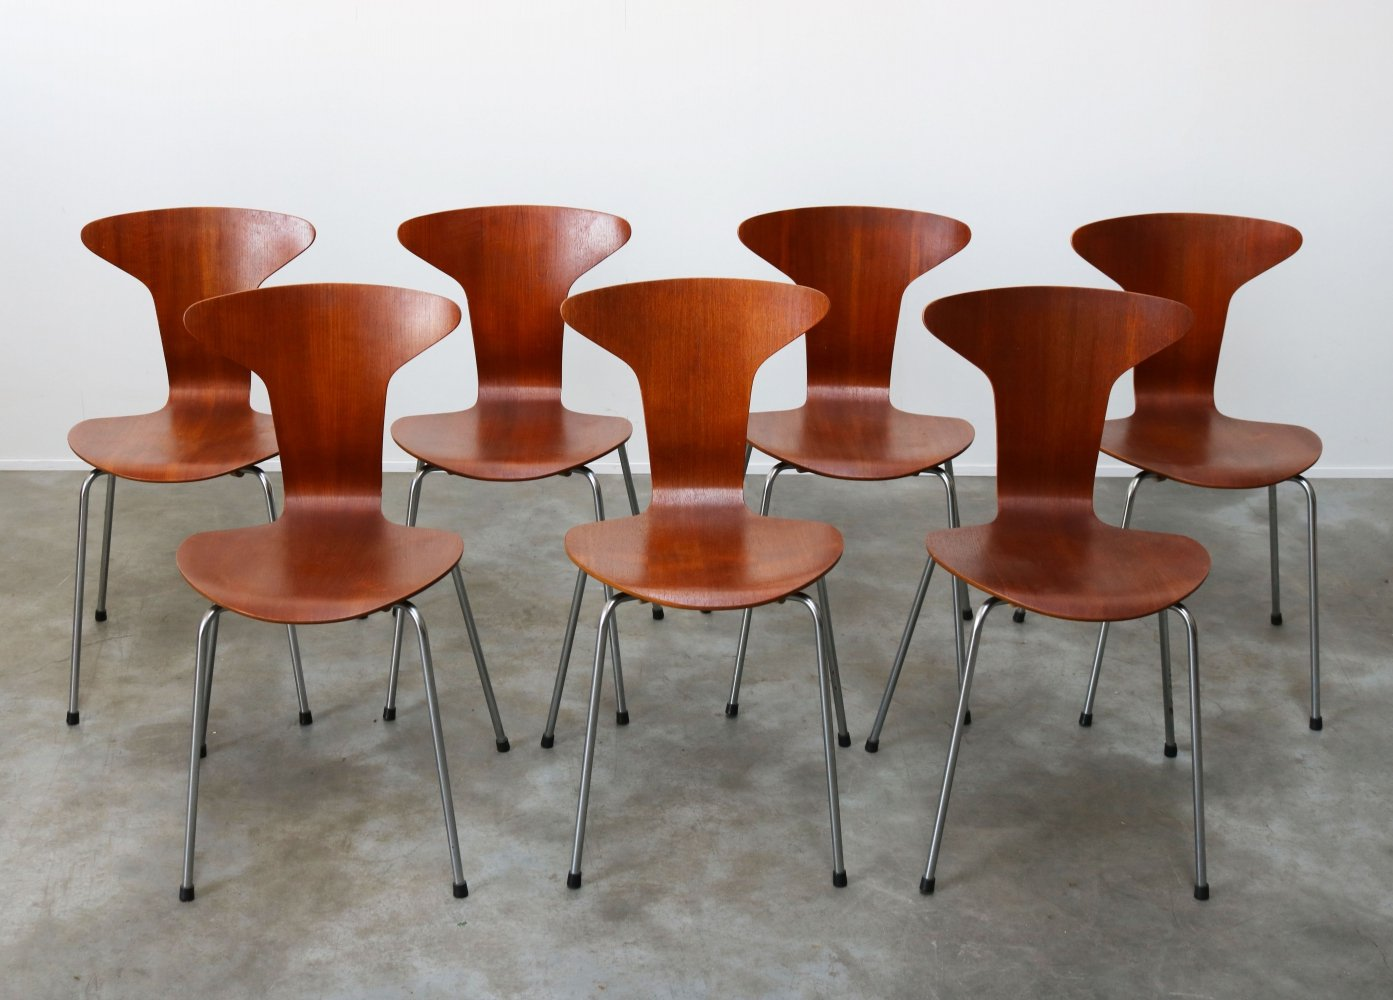 Set of 7 Mosquito / Model 3105 Chairs in teak by Arne Jacobsen for Fritz Hansen